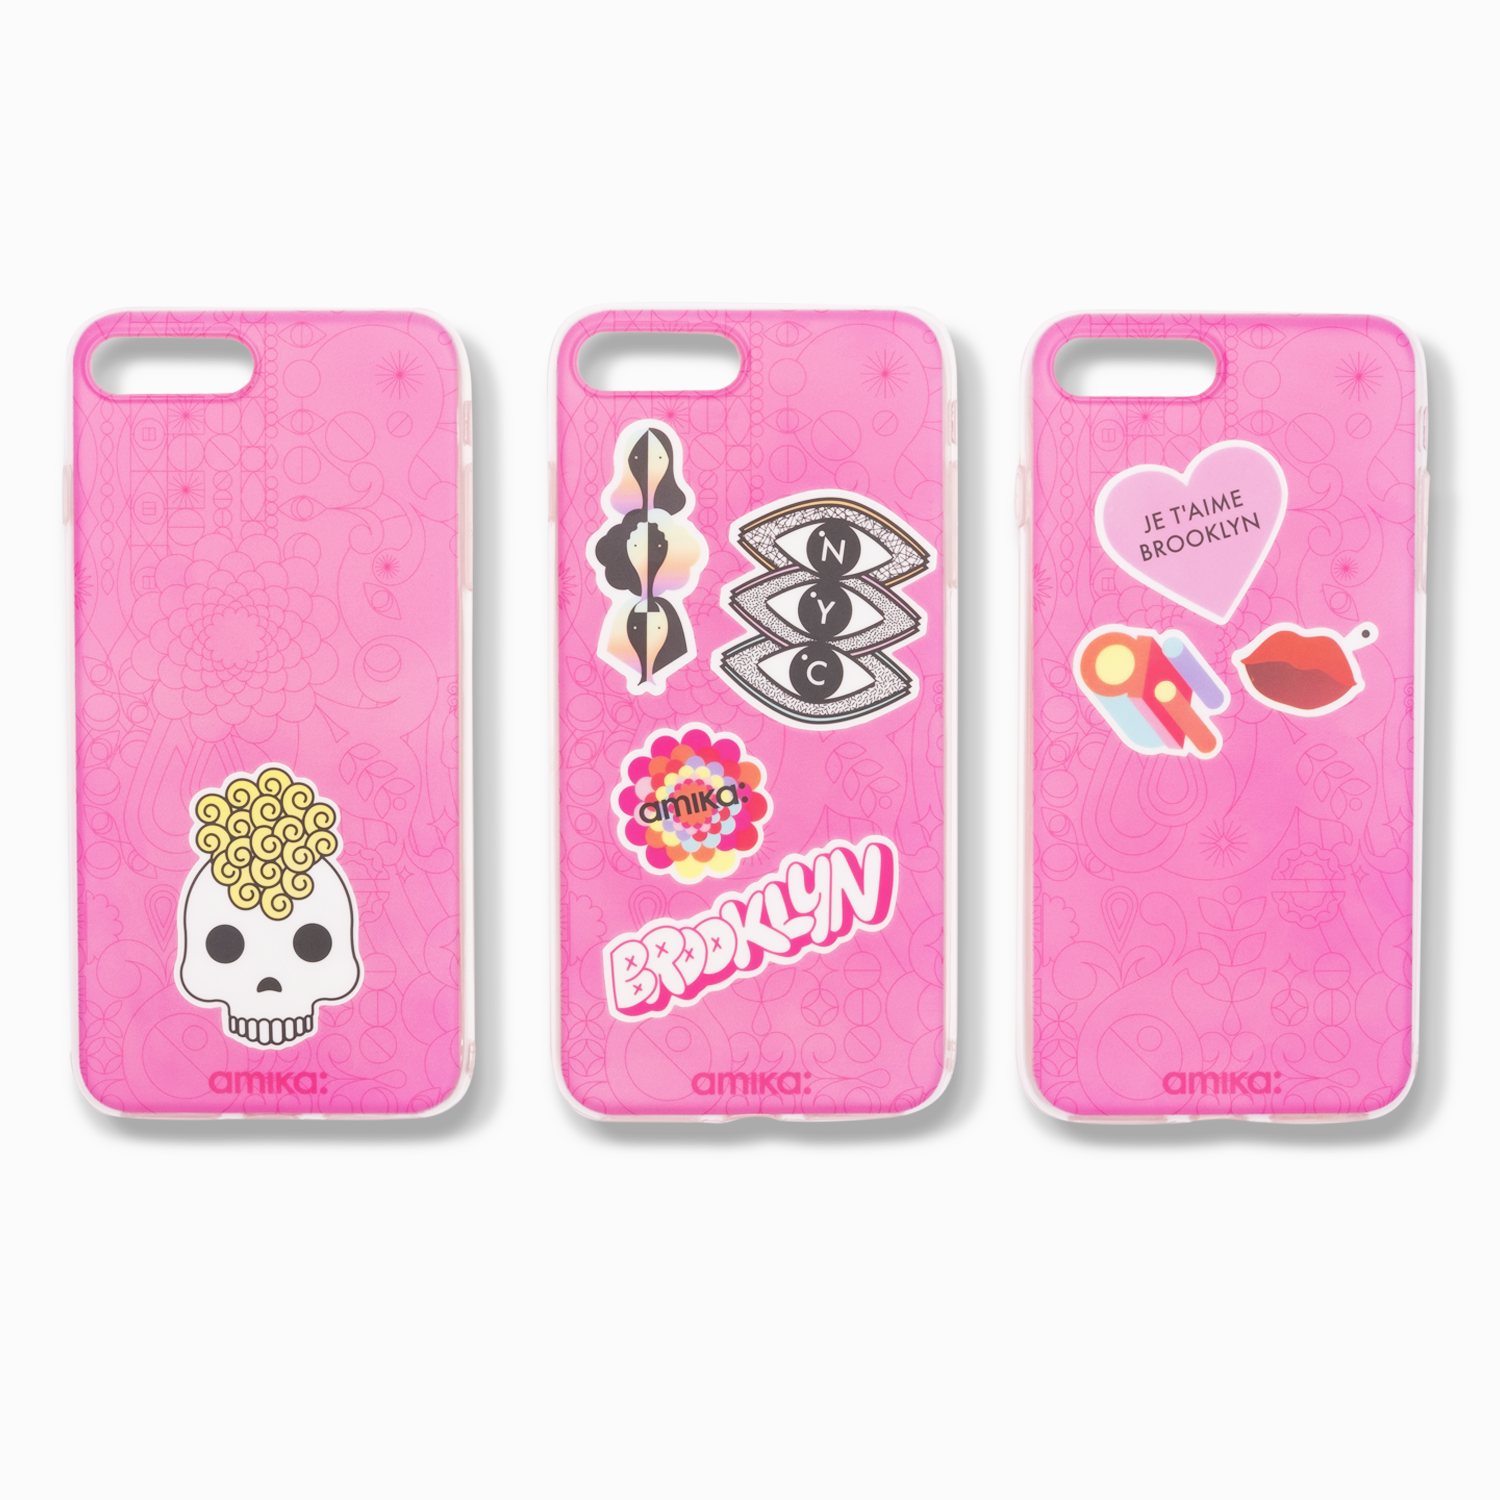 pink iPhone cases | amika